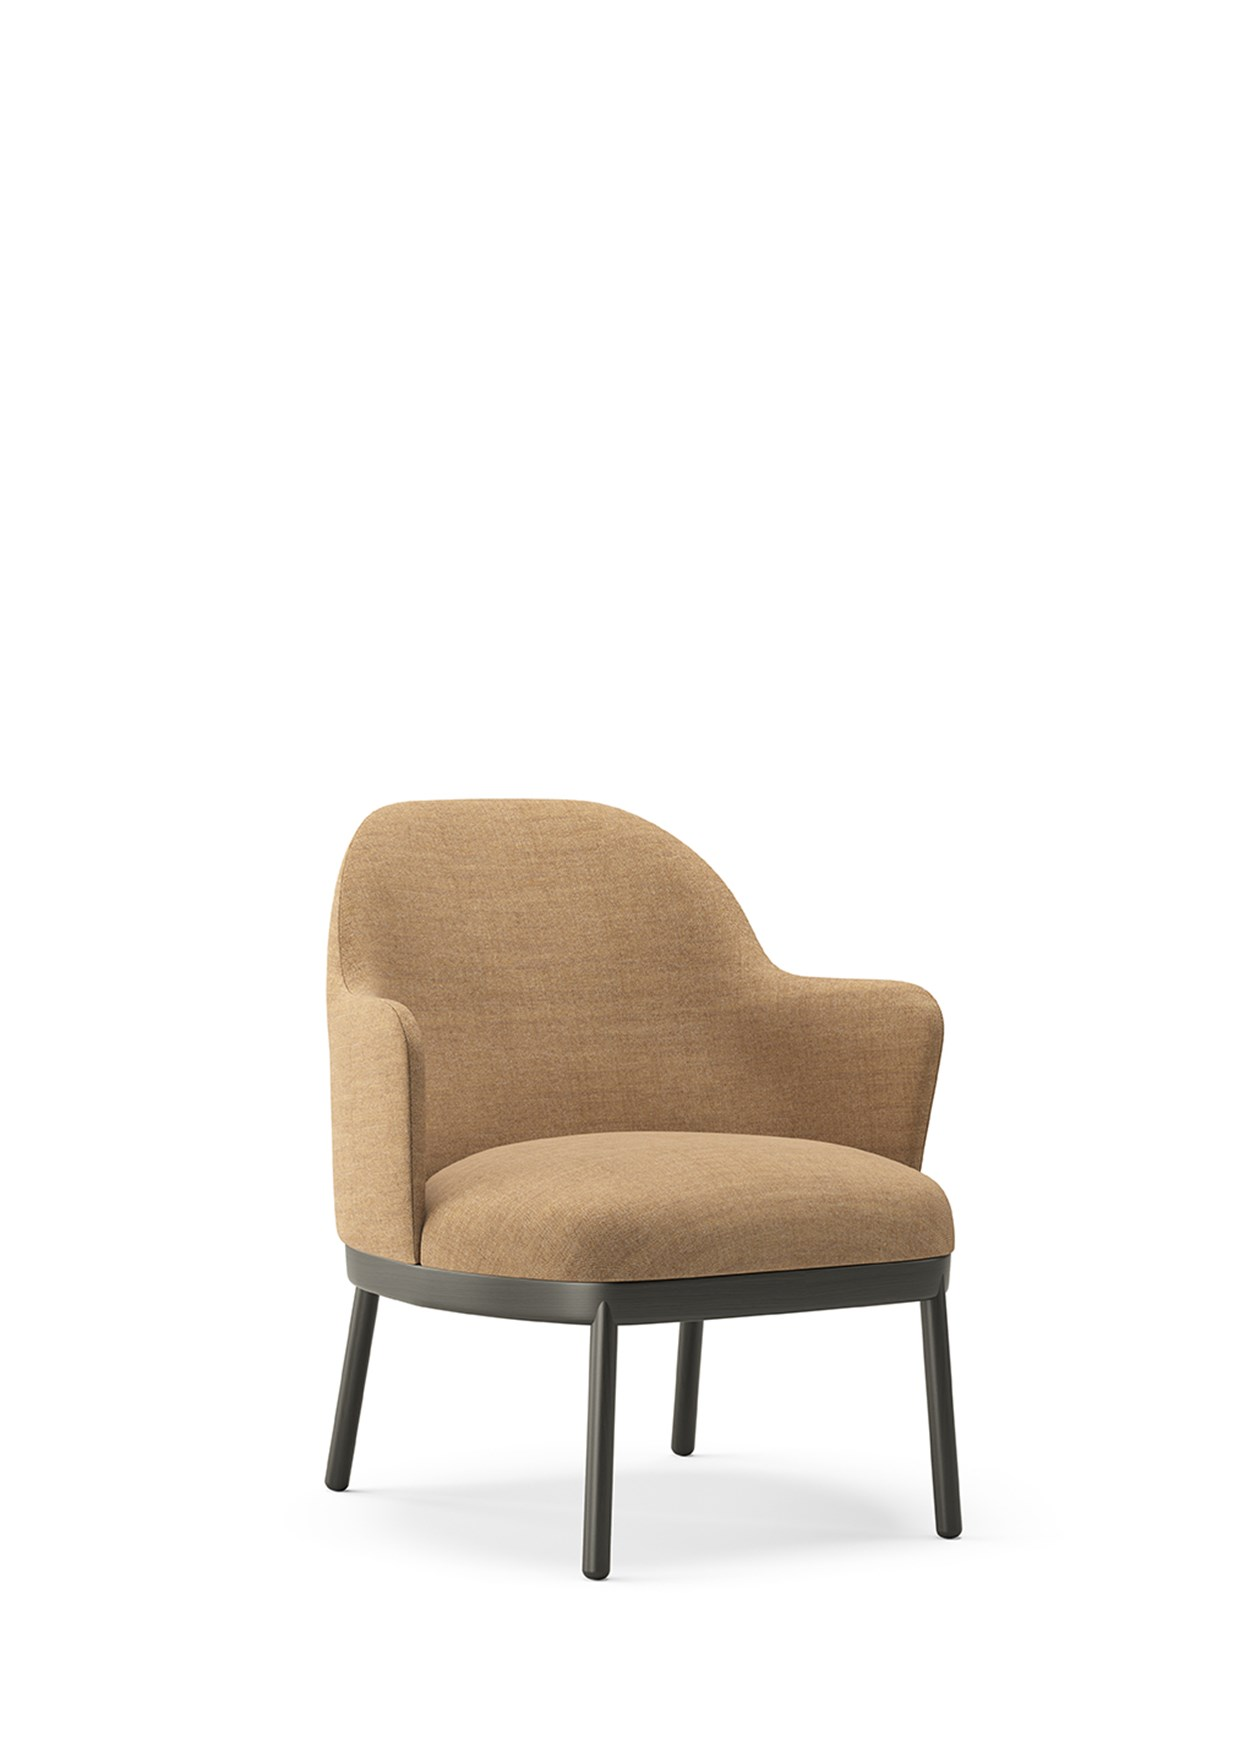 VICCARBE_ALETA Lounge Chair wooden base with arms (1).jpg